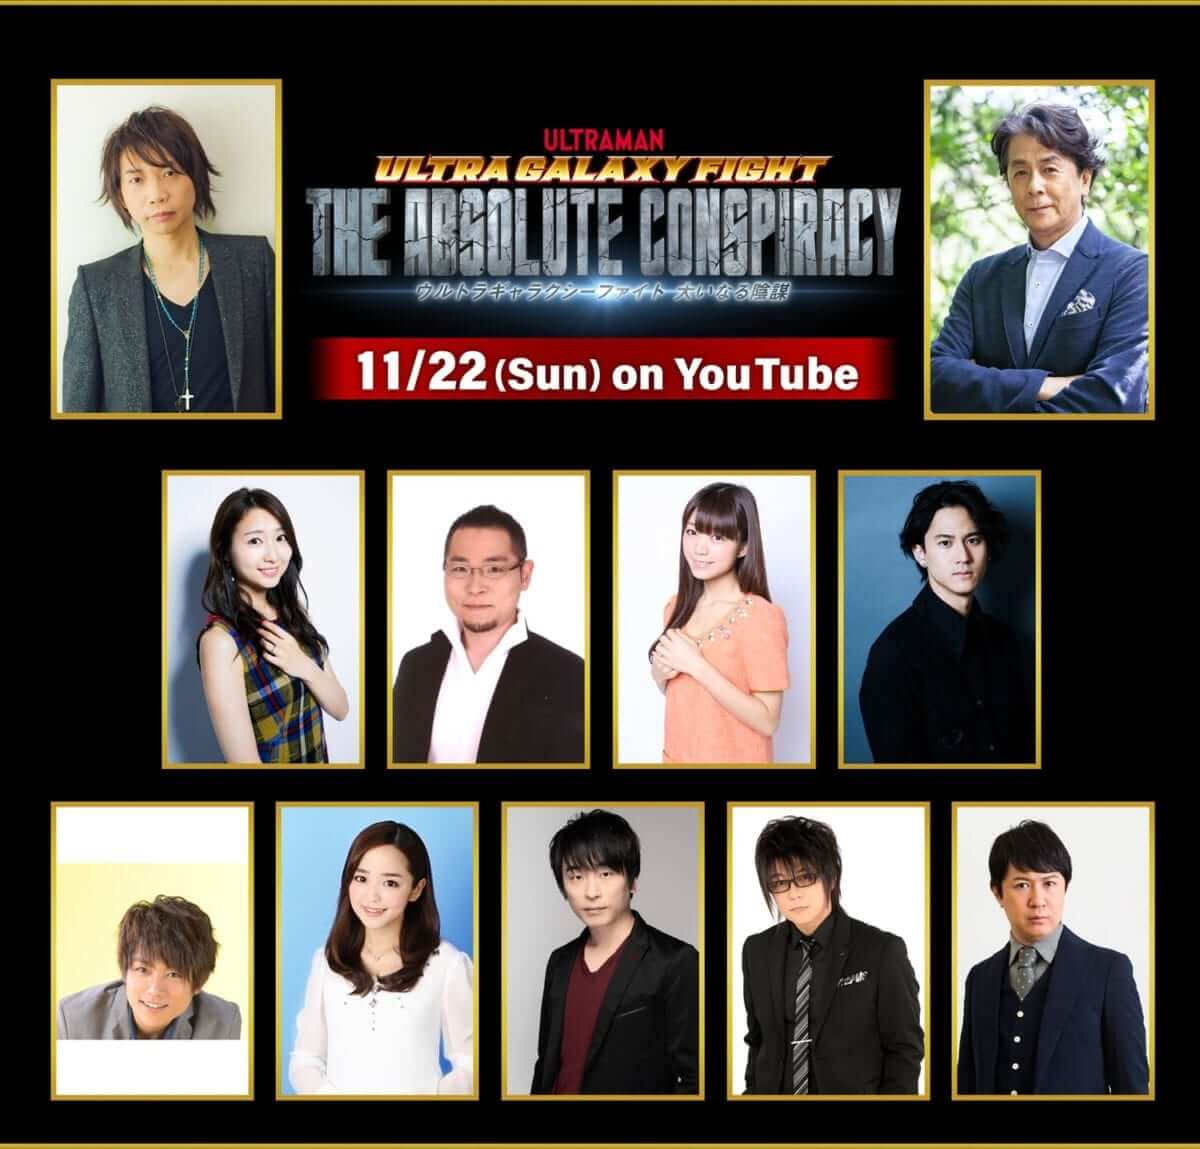 ULTRA GALAXY FIGHT: THE ABSOLUTE CONSPIRACY MEGA DROP  RELEASE DATE, STORY, AND JAPANESE CAST ARE REVEALED!